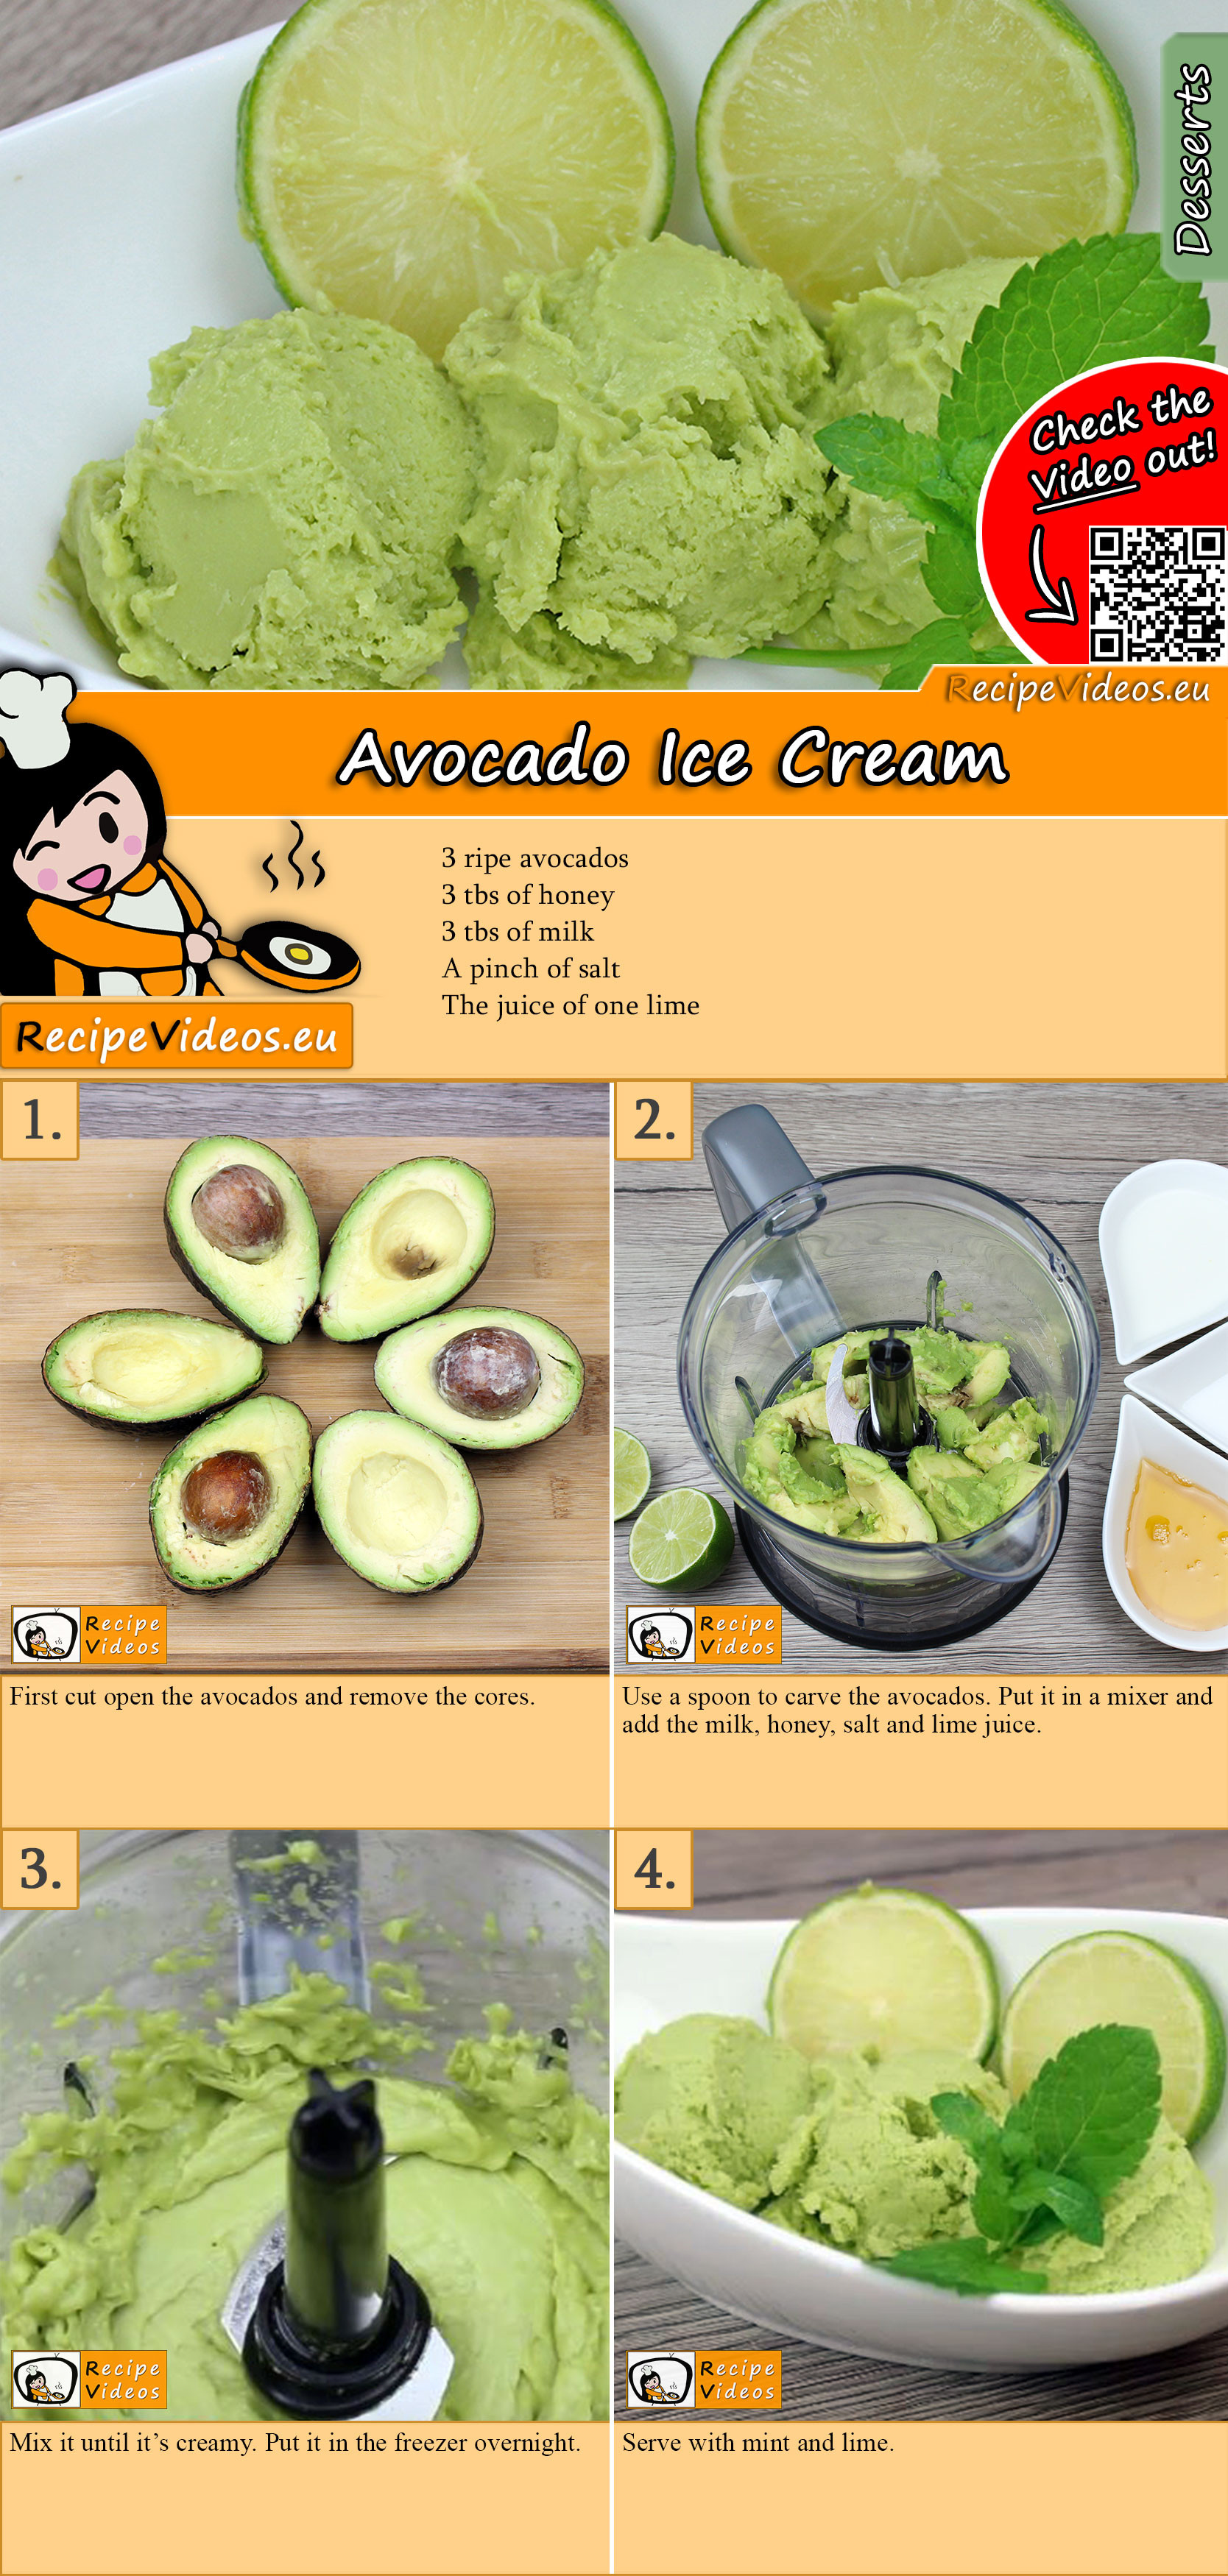 Avocado Ice Cream recipe with video